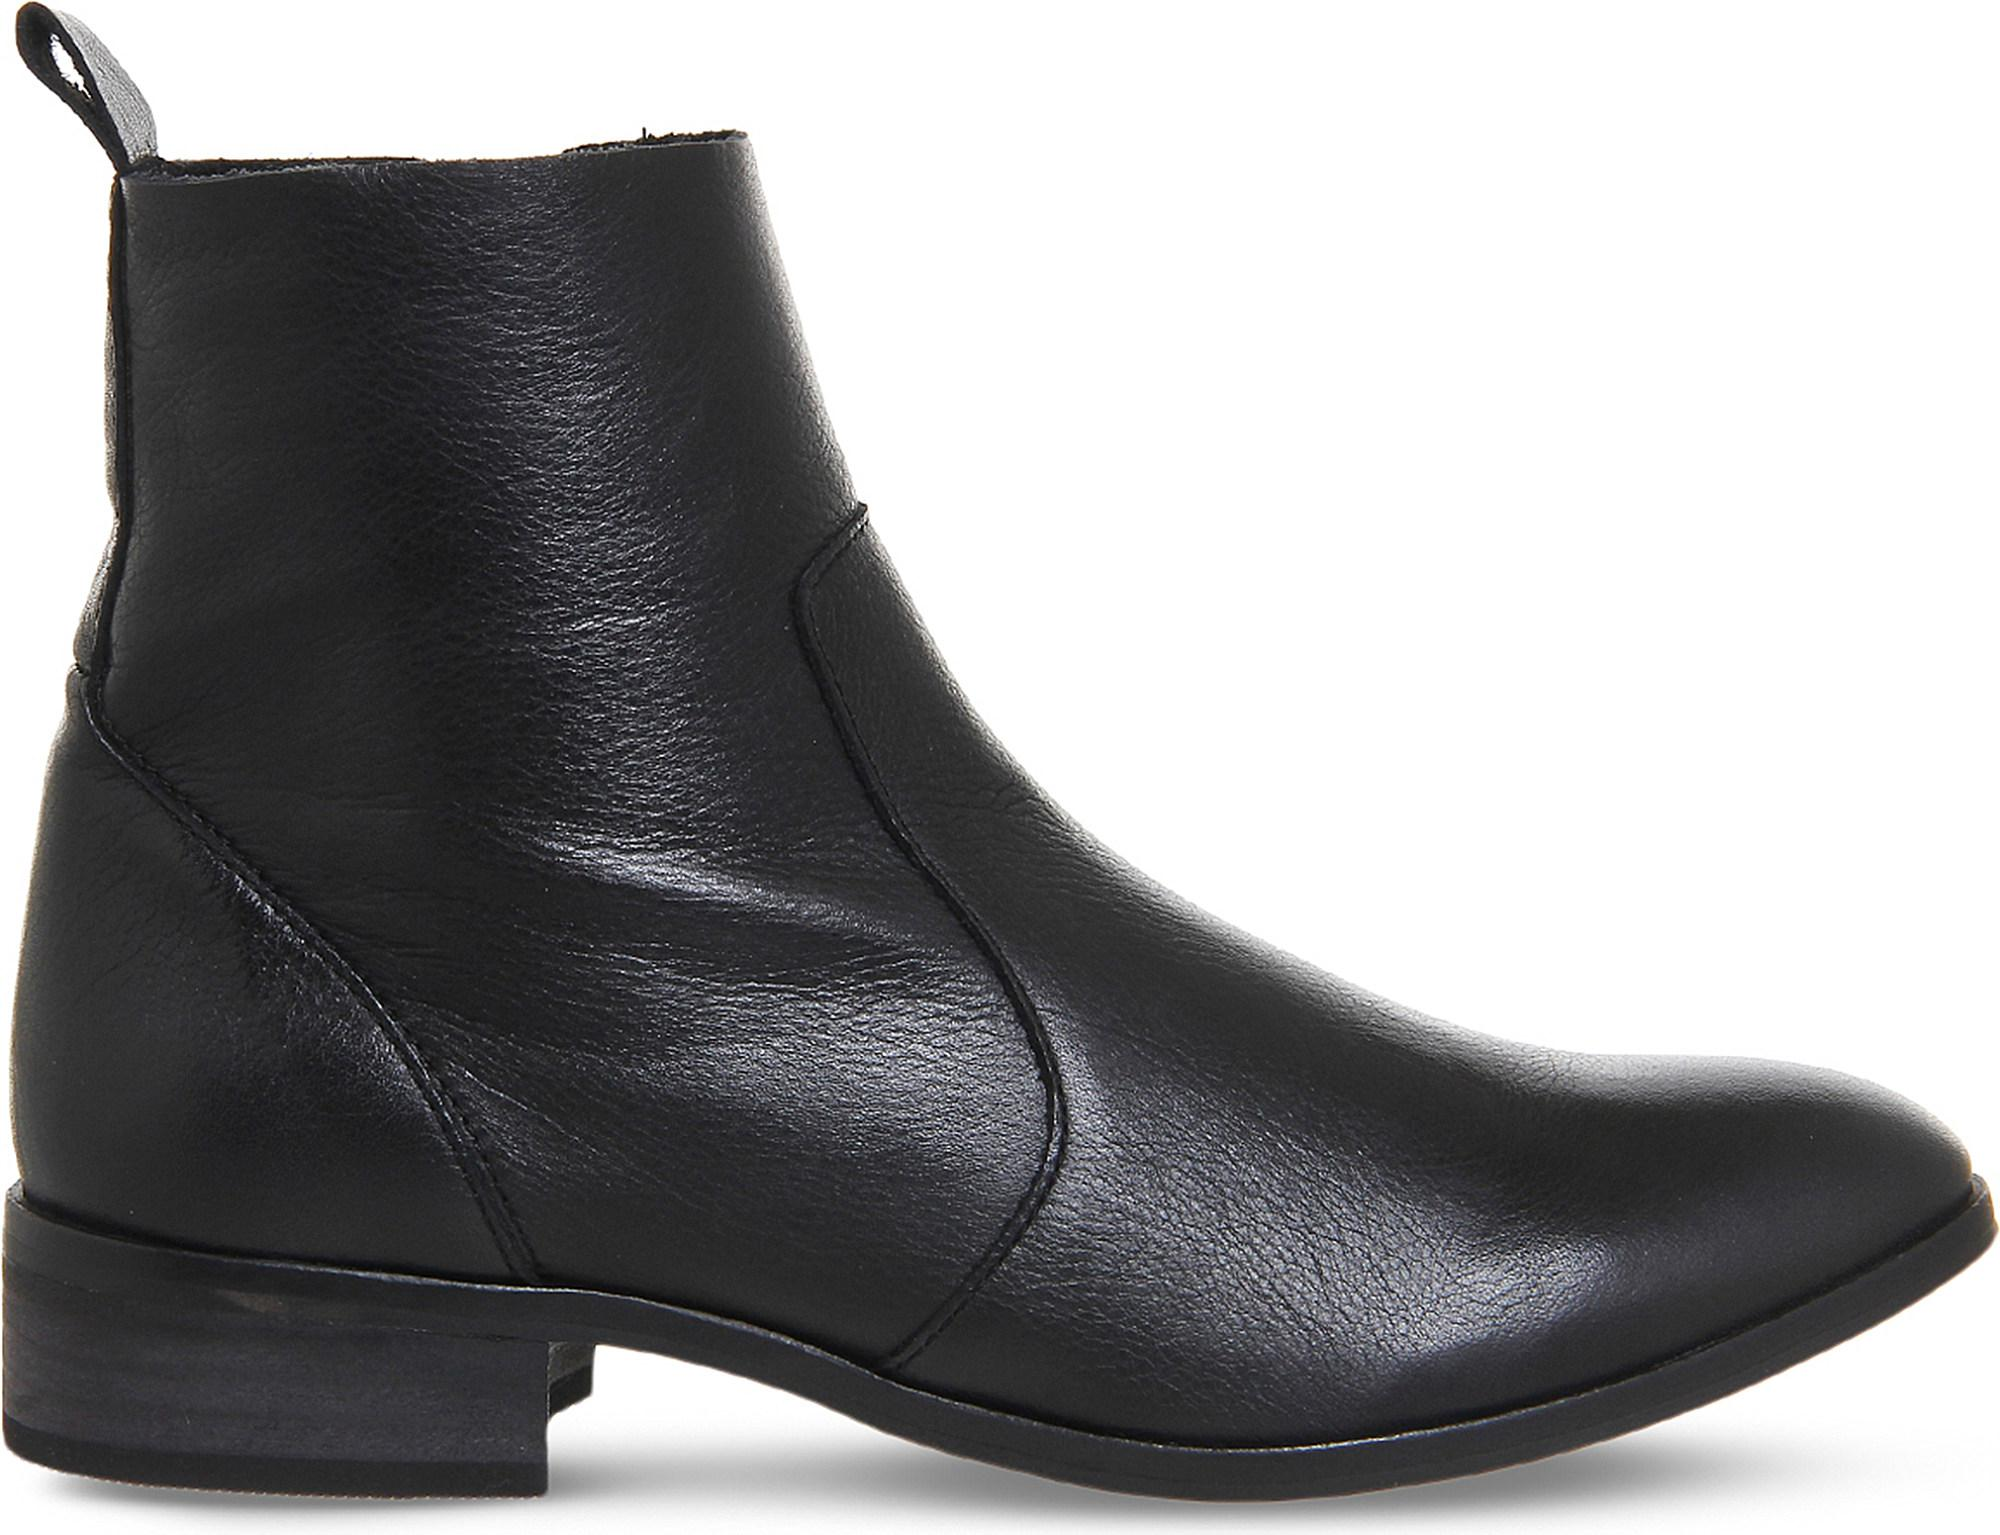 Lyst - Office Ashleigh Leather Ankle Boots in Black 76a060185454